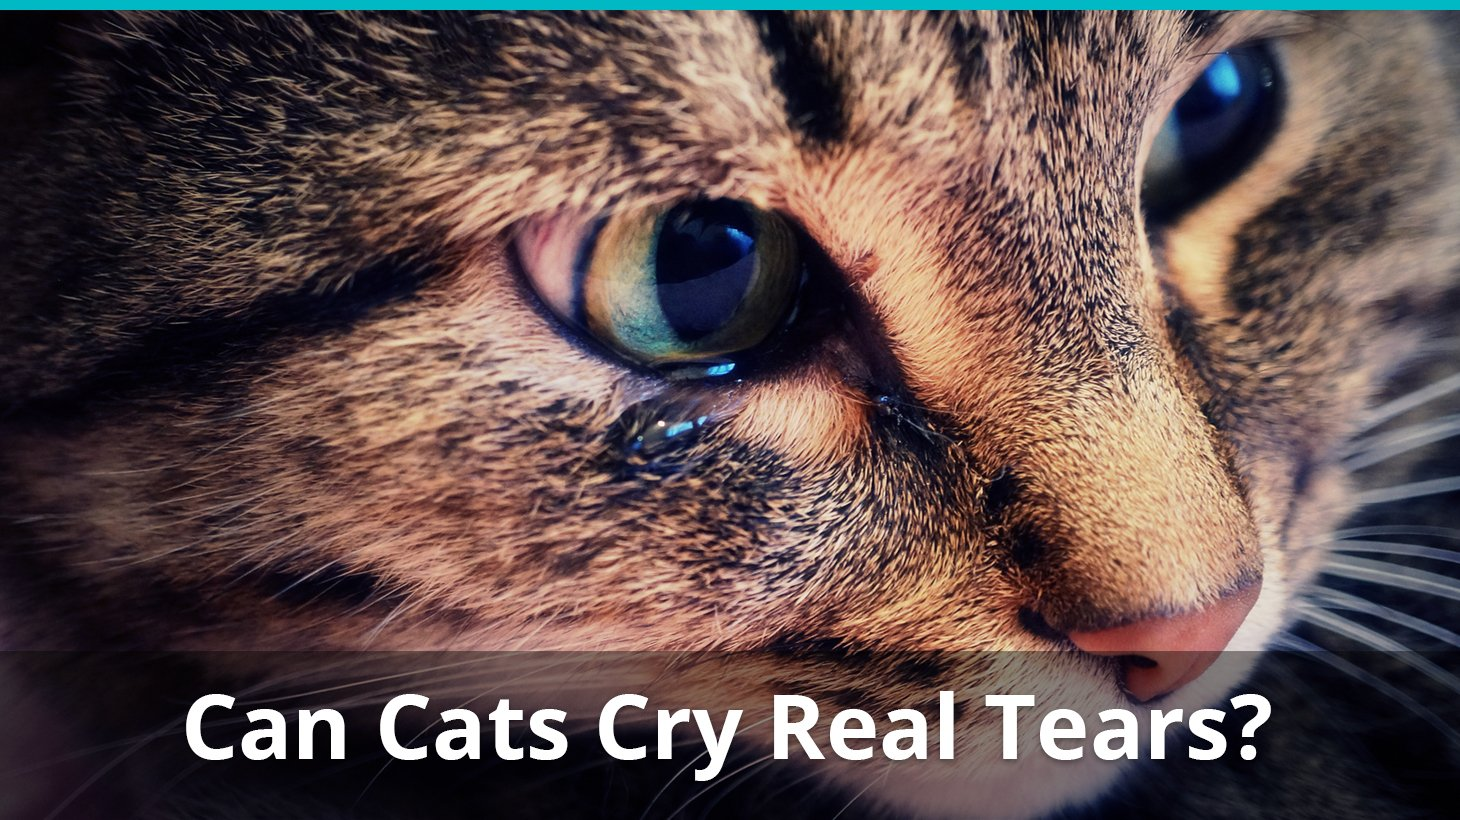 Can Cats Cry Tears Like Humans? Do They Cry When In Pain Or Sad?